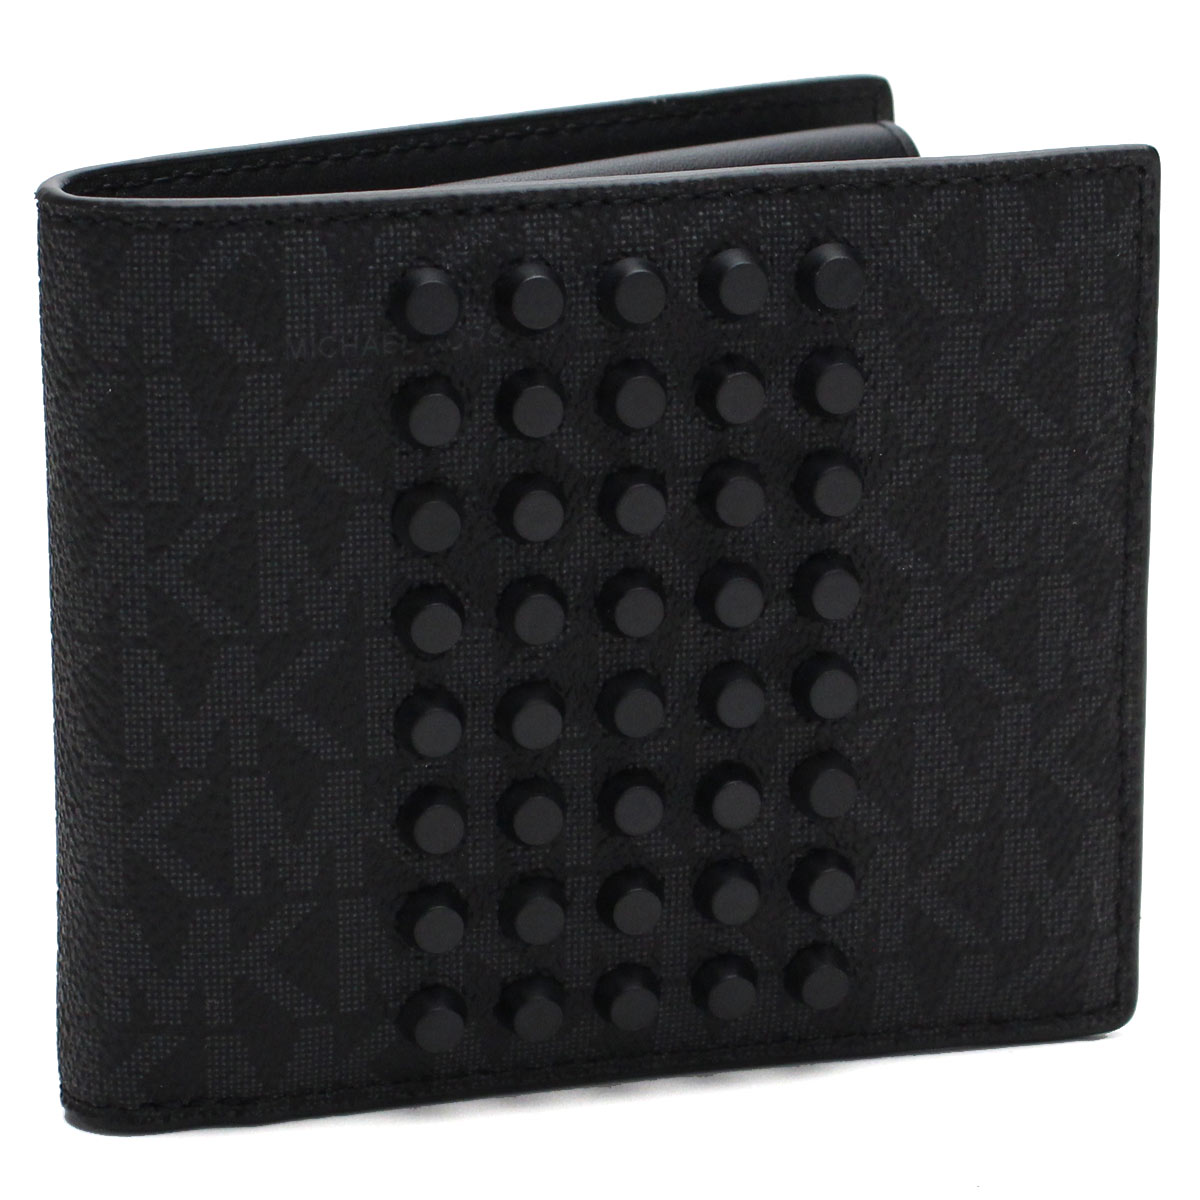 b5bc82740a72 Bighit The total brand wholesale  39F7MMNF3U BLACK black with the two fold wallet  coin purse with Michael Kors MICHAEL KORS wallet JET SET MENS studs ...